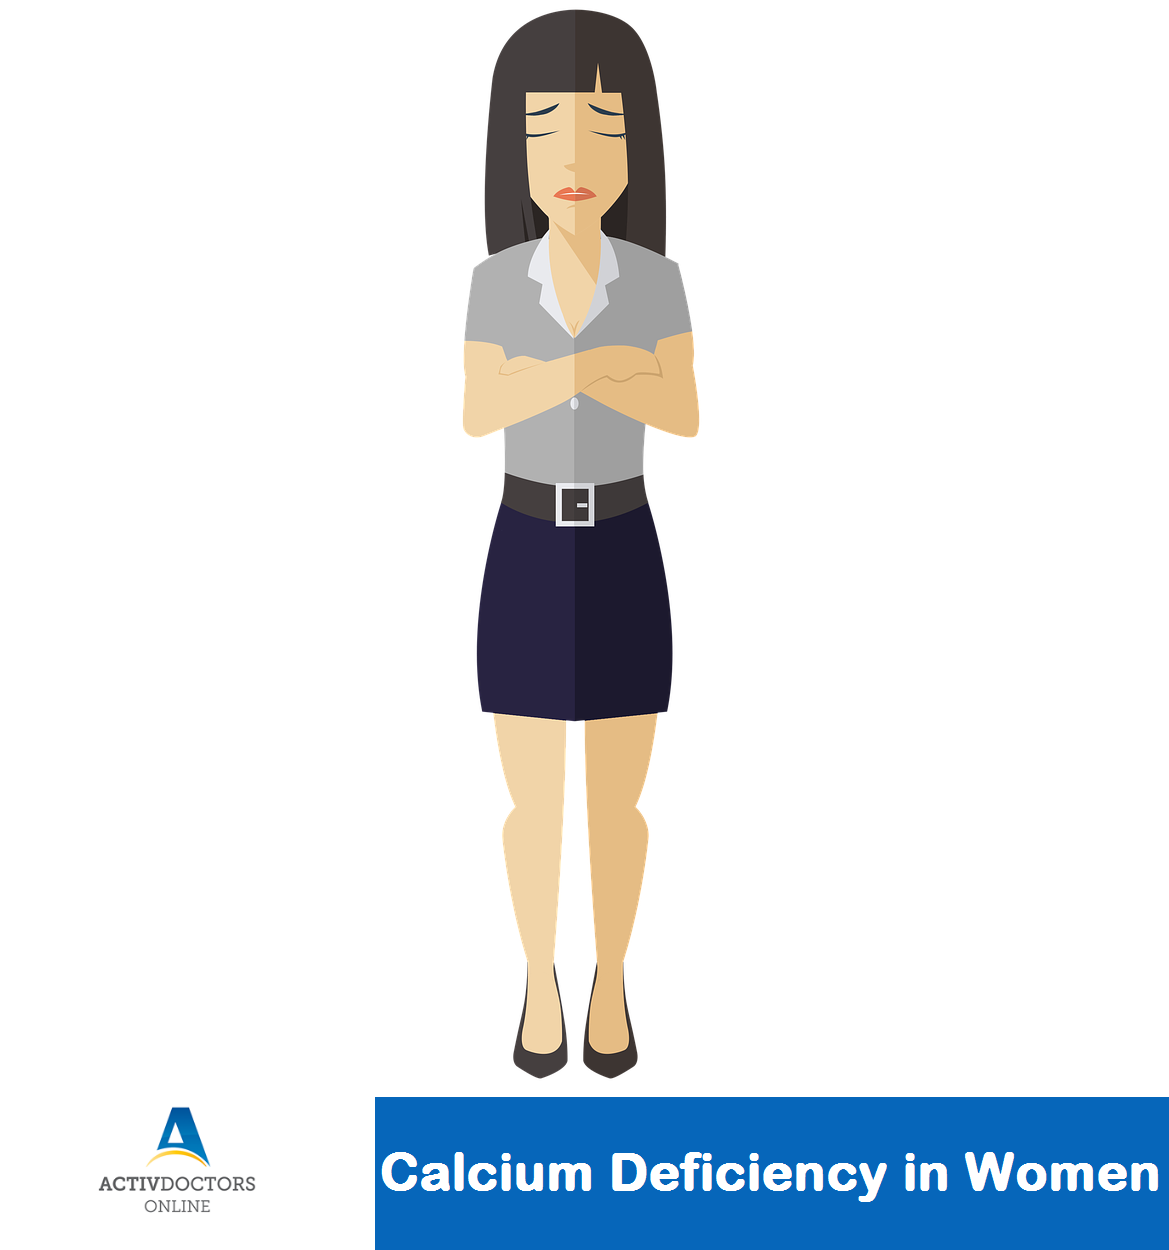 Calcium Deficiency in Women